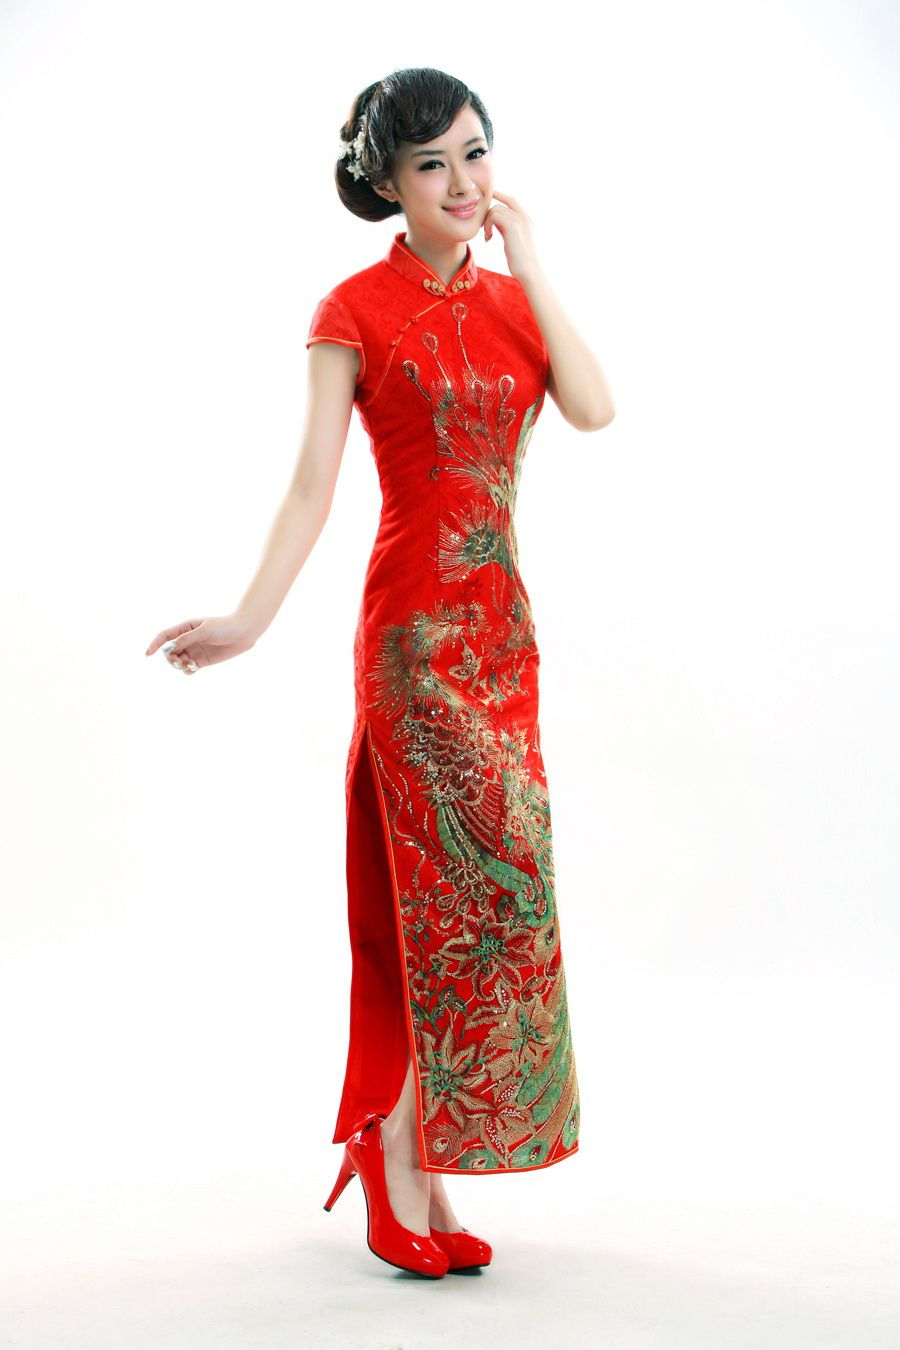 Qipao Chinese Traditional Dress Qipao Pictures Chinese Culture Long Sleeve Evening Dresses Dresses Sheer Wedding Dress [ 1350 x 900 Pixel ]